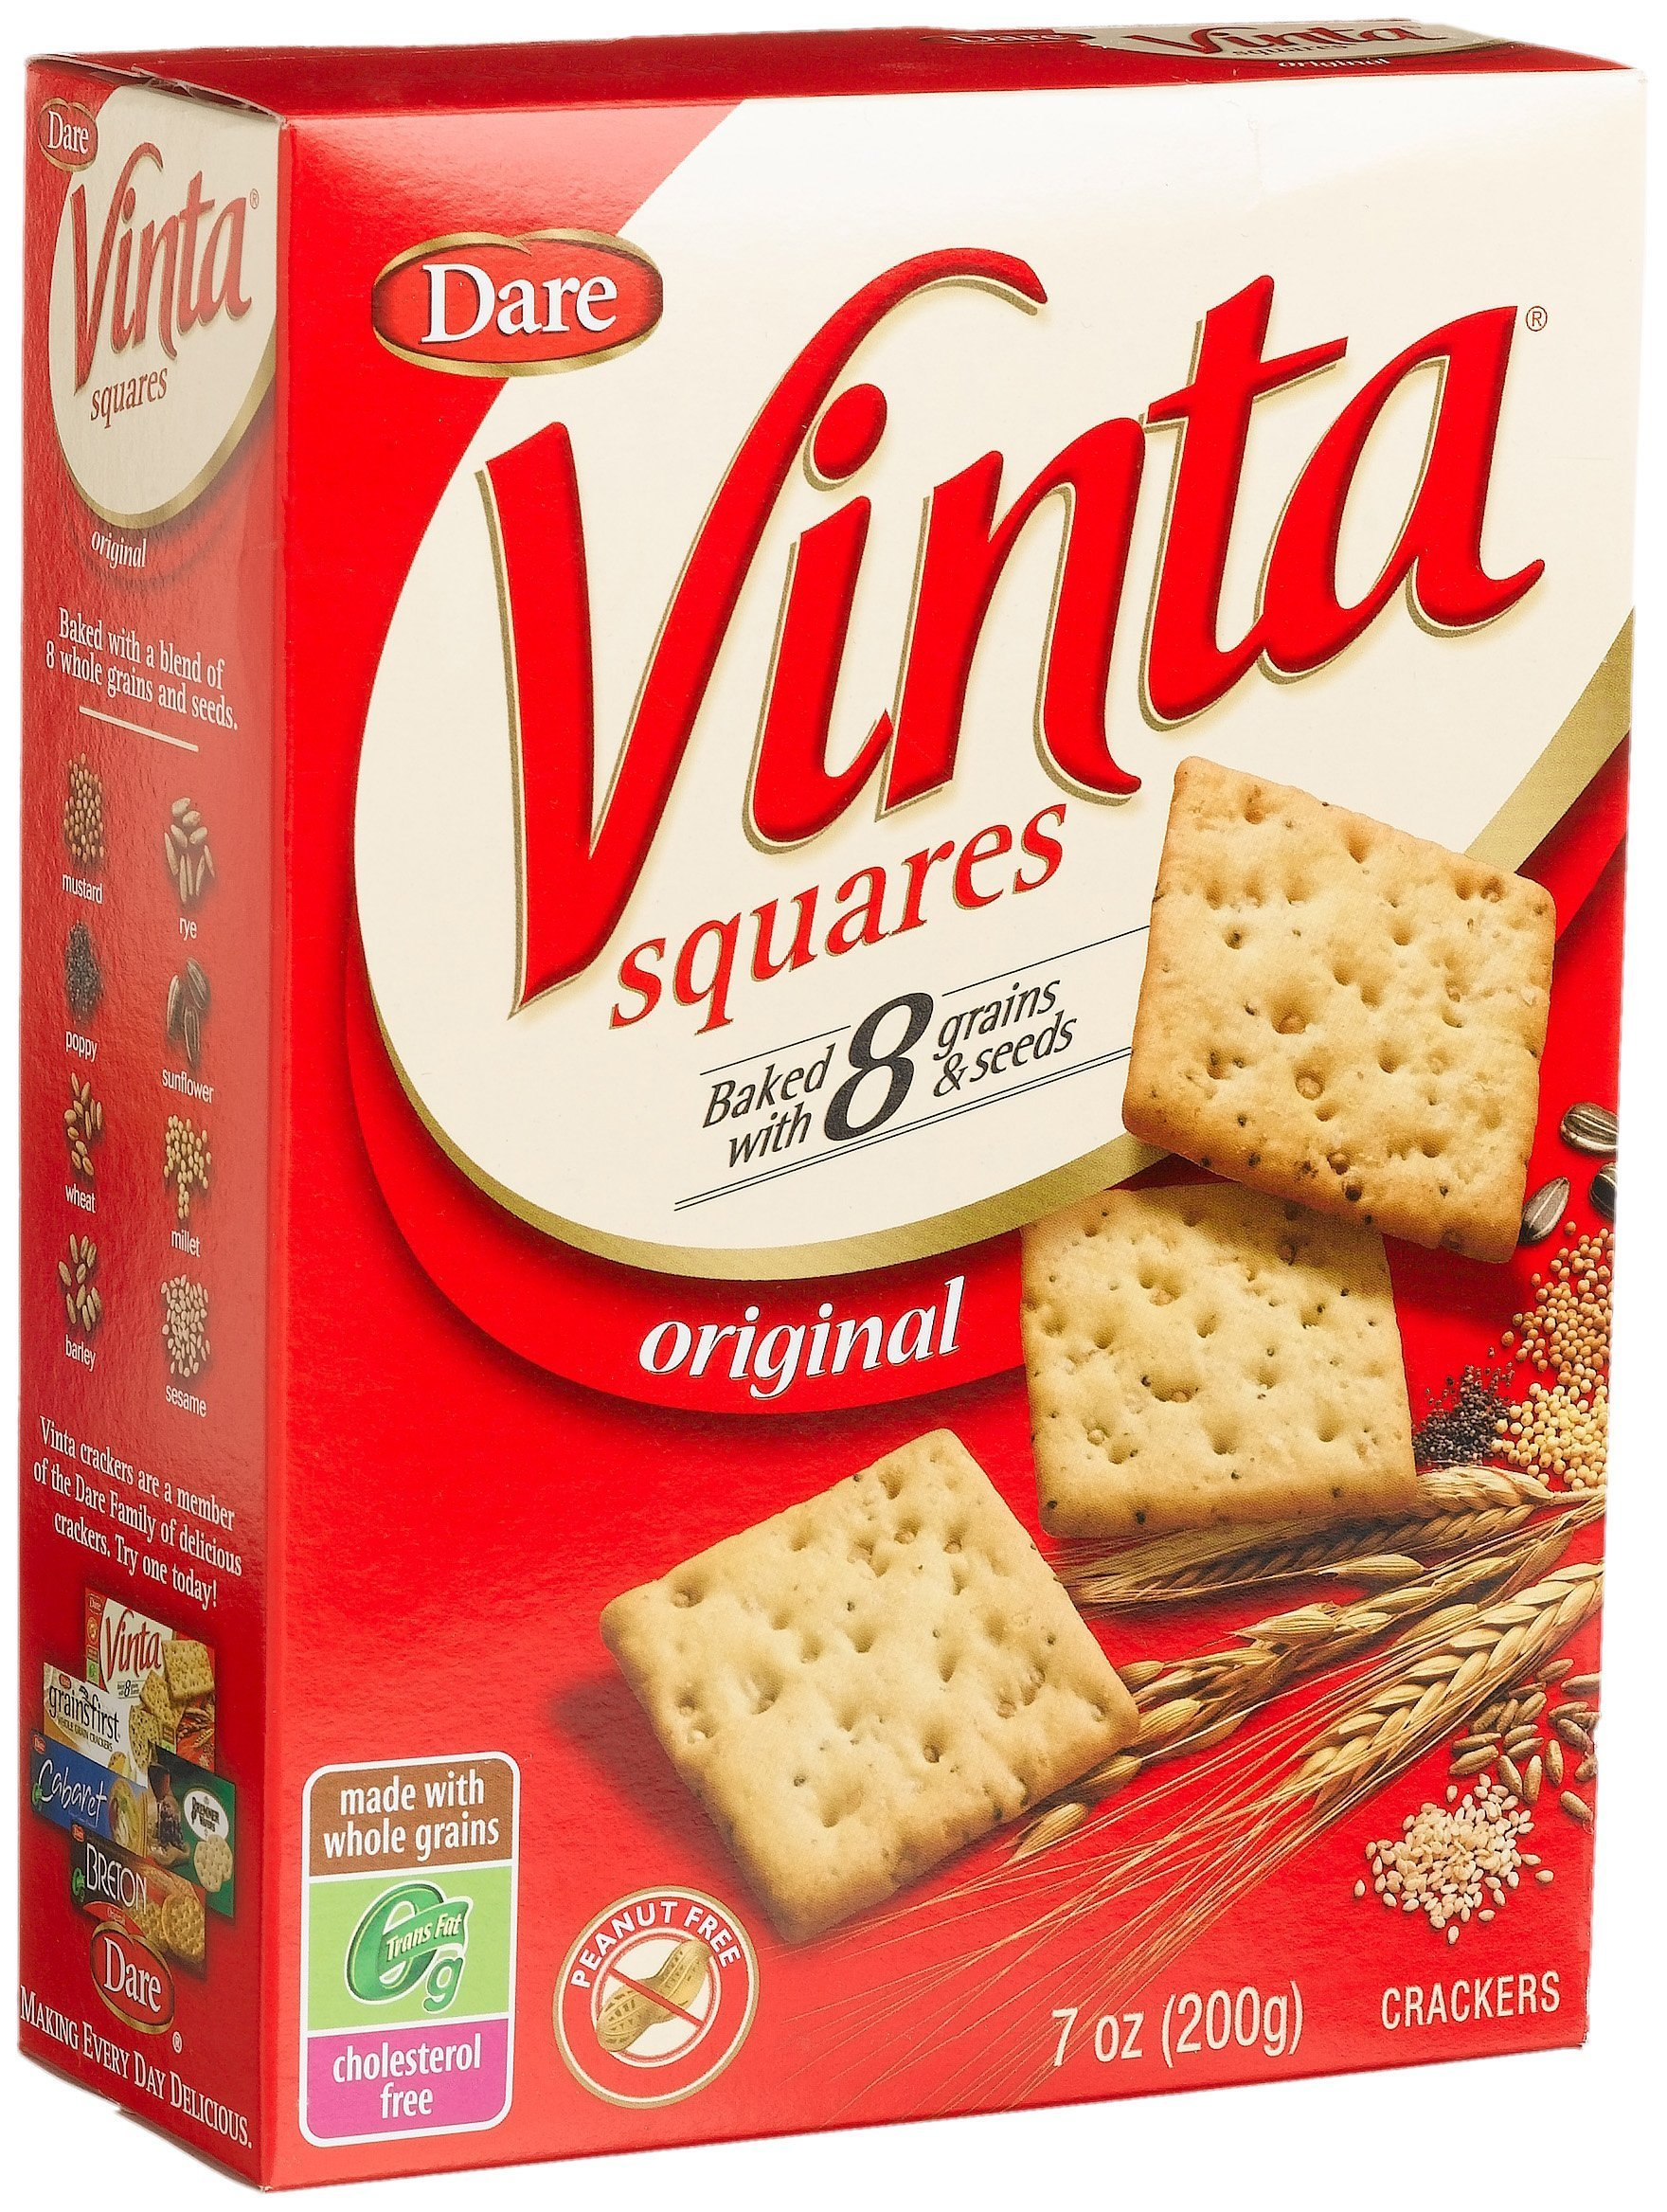 Vinta Squares Crackers, Original –8 Grains and Seeds – No Artificial Flavors, No Cholesterol, Peanut Free - Delicious Plain or Topped, 7 oz boxes. (Pack of 12)